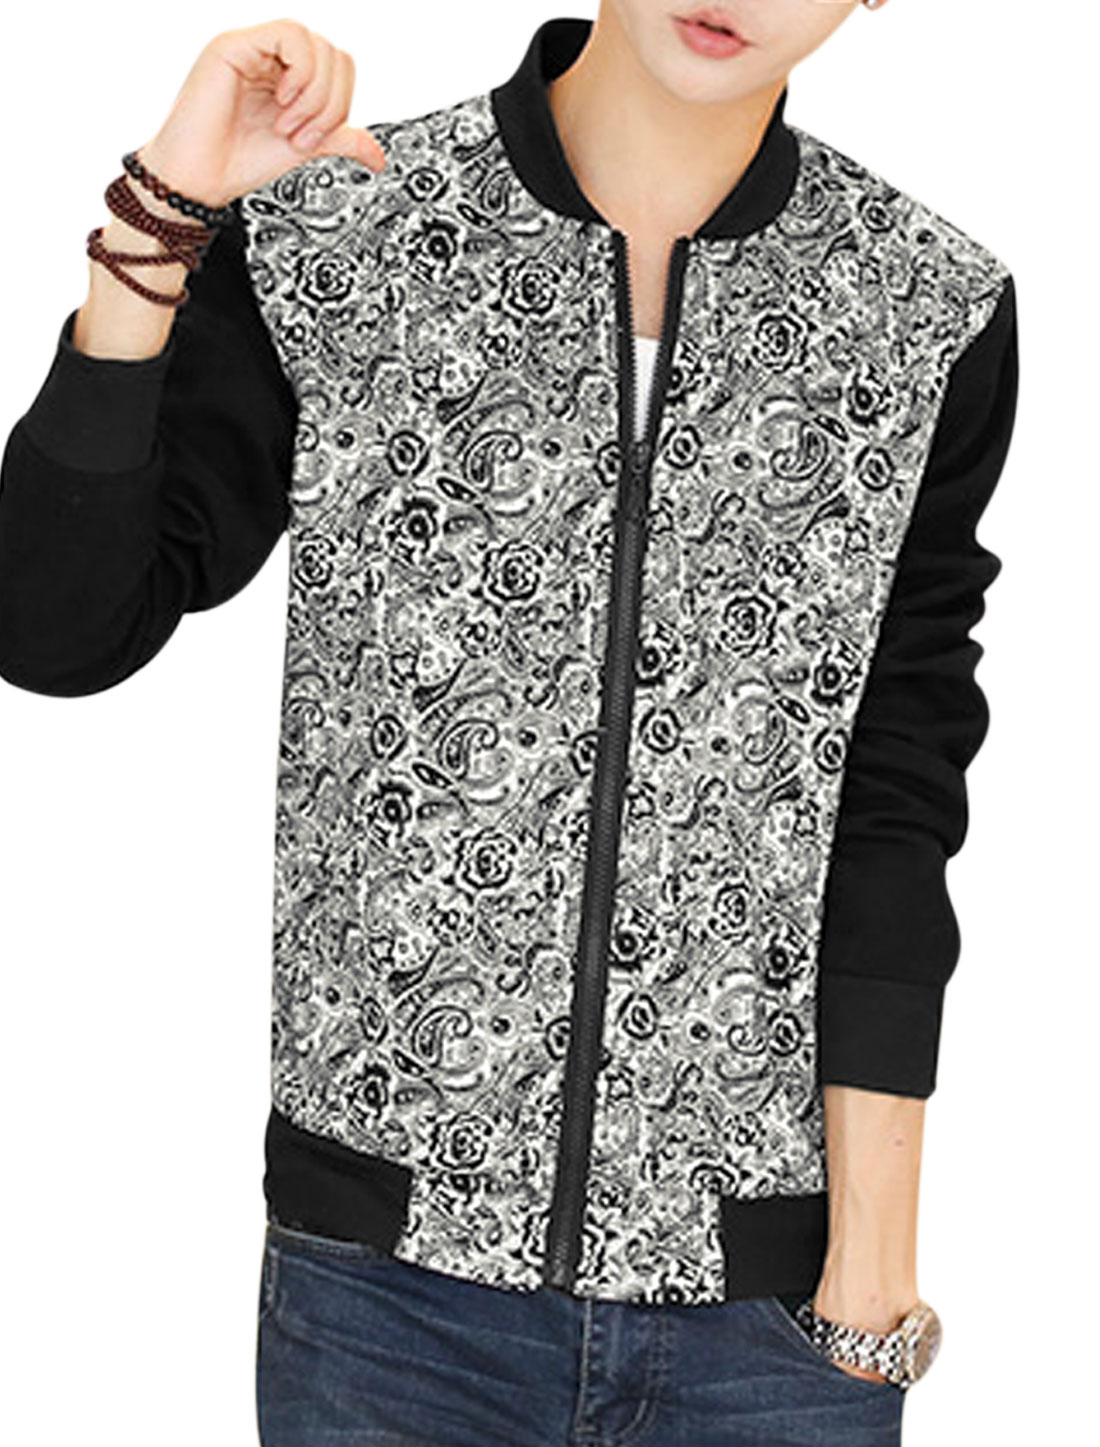 Man White Black Stand Collar Long Sleeves Floral Print Zippered Front Jacket S